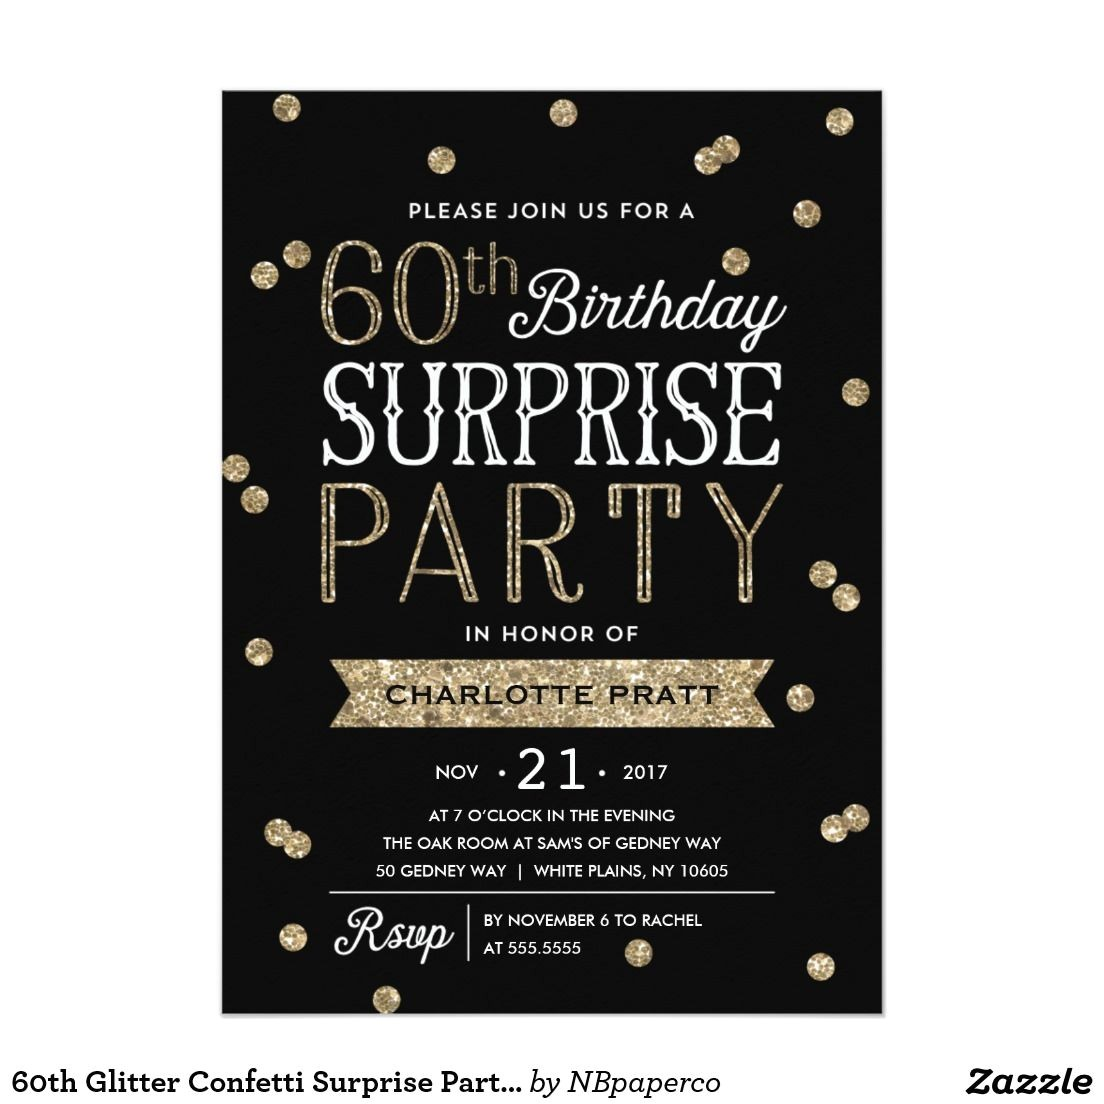 Surprise 60th Birthday Invitation Wording Ideas 60th Glitter Confetti Surprise Party Invitation Surprise